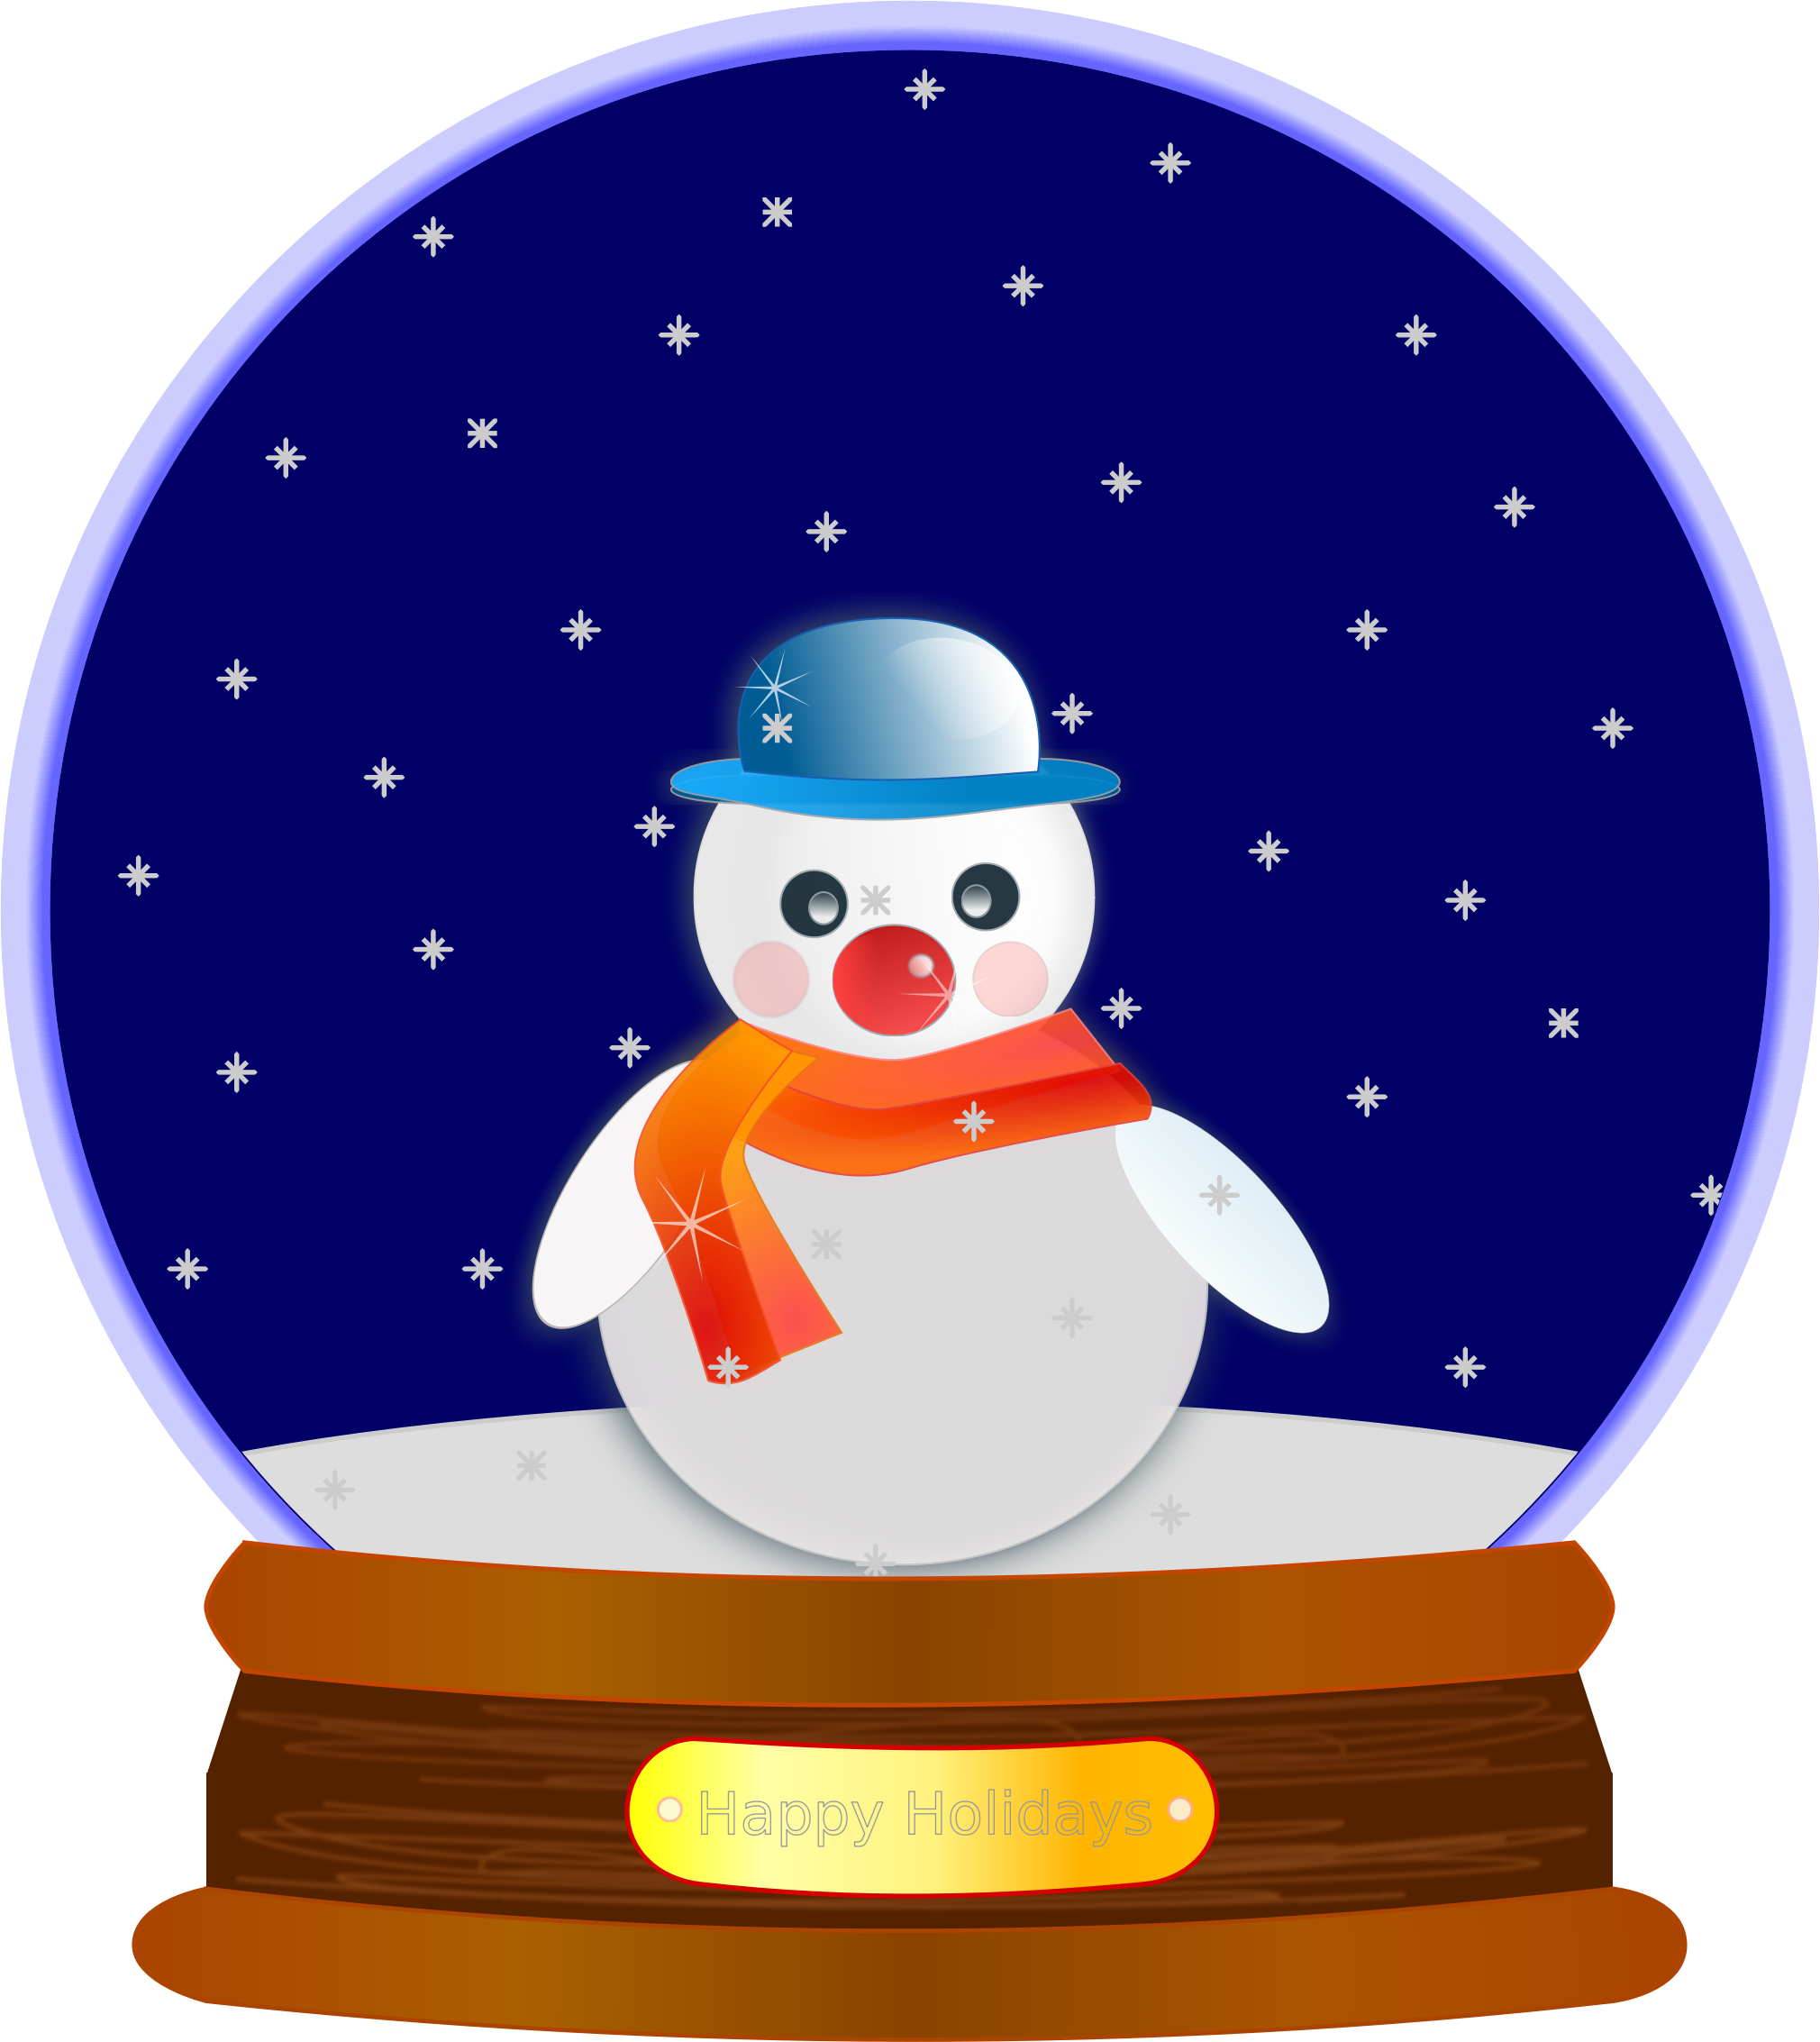 Winter clipart animated, Winter animated Transparent FREE for.